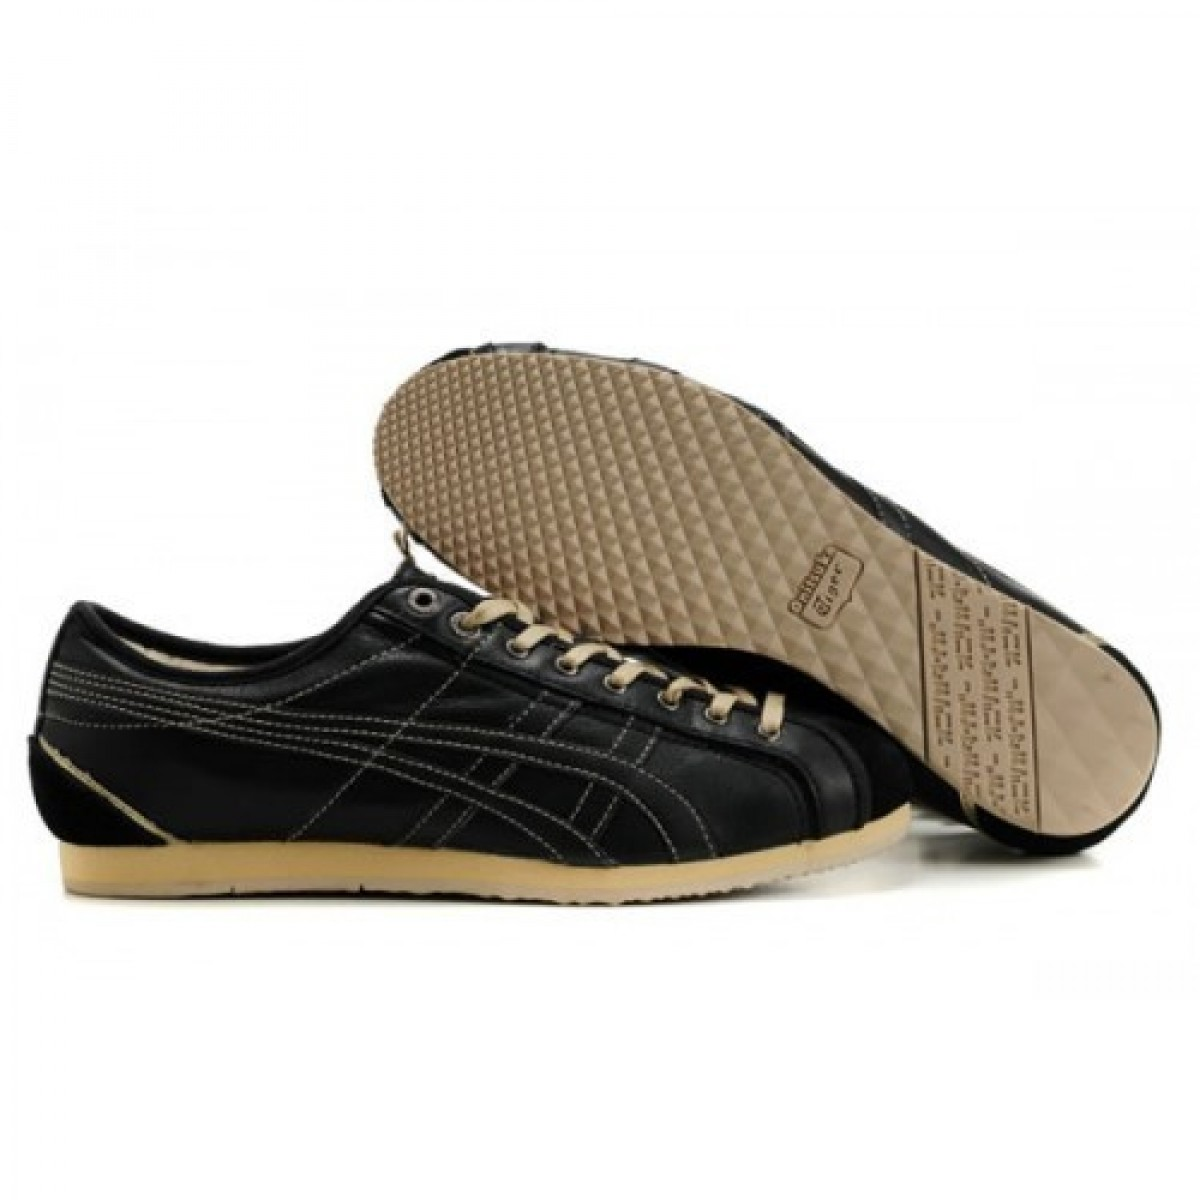 DB5957 Soldes Asics Onitsuka Tiger Olympos Chaussures Beige Noir 49246090 Pas Cher